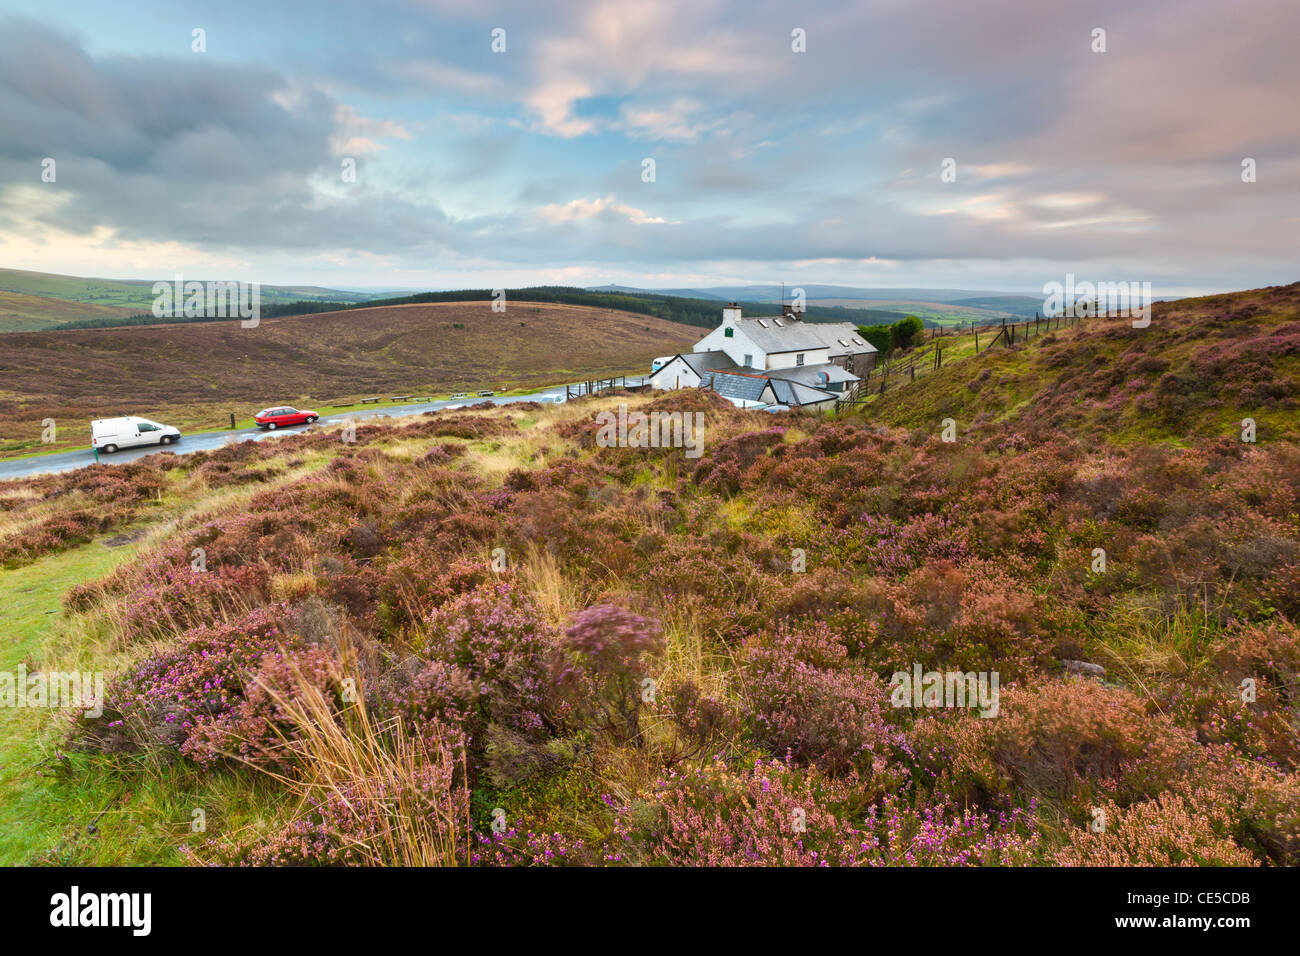 View from Water Hill towards Warren House Inn, Dartmoor National Park, Postbridge, Devon, England, UK, Europe - Stock Image